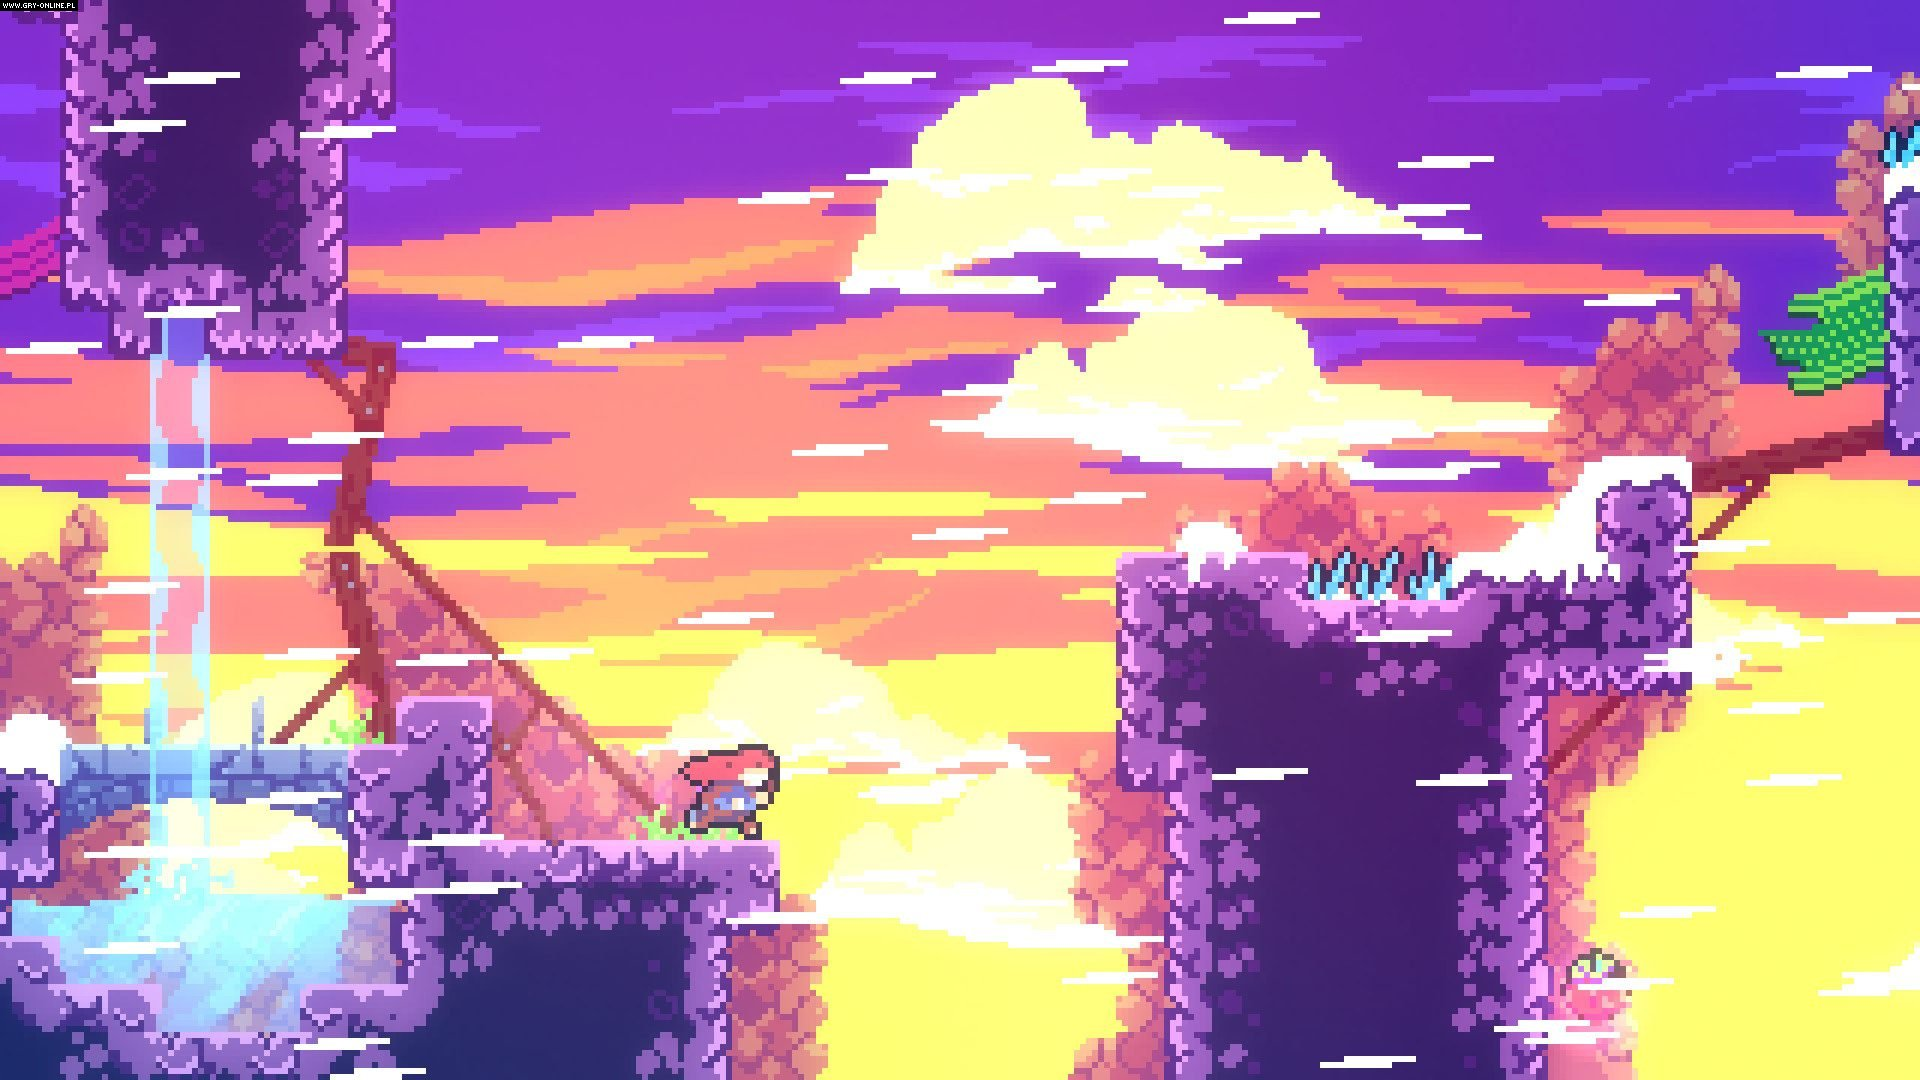 Celeste PC, PS4, XONE, Switch Games Image 17/24, Matt Makes Games / Extremely OK Games